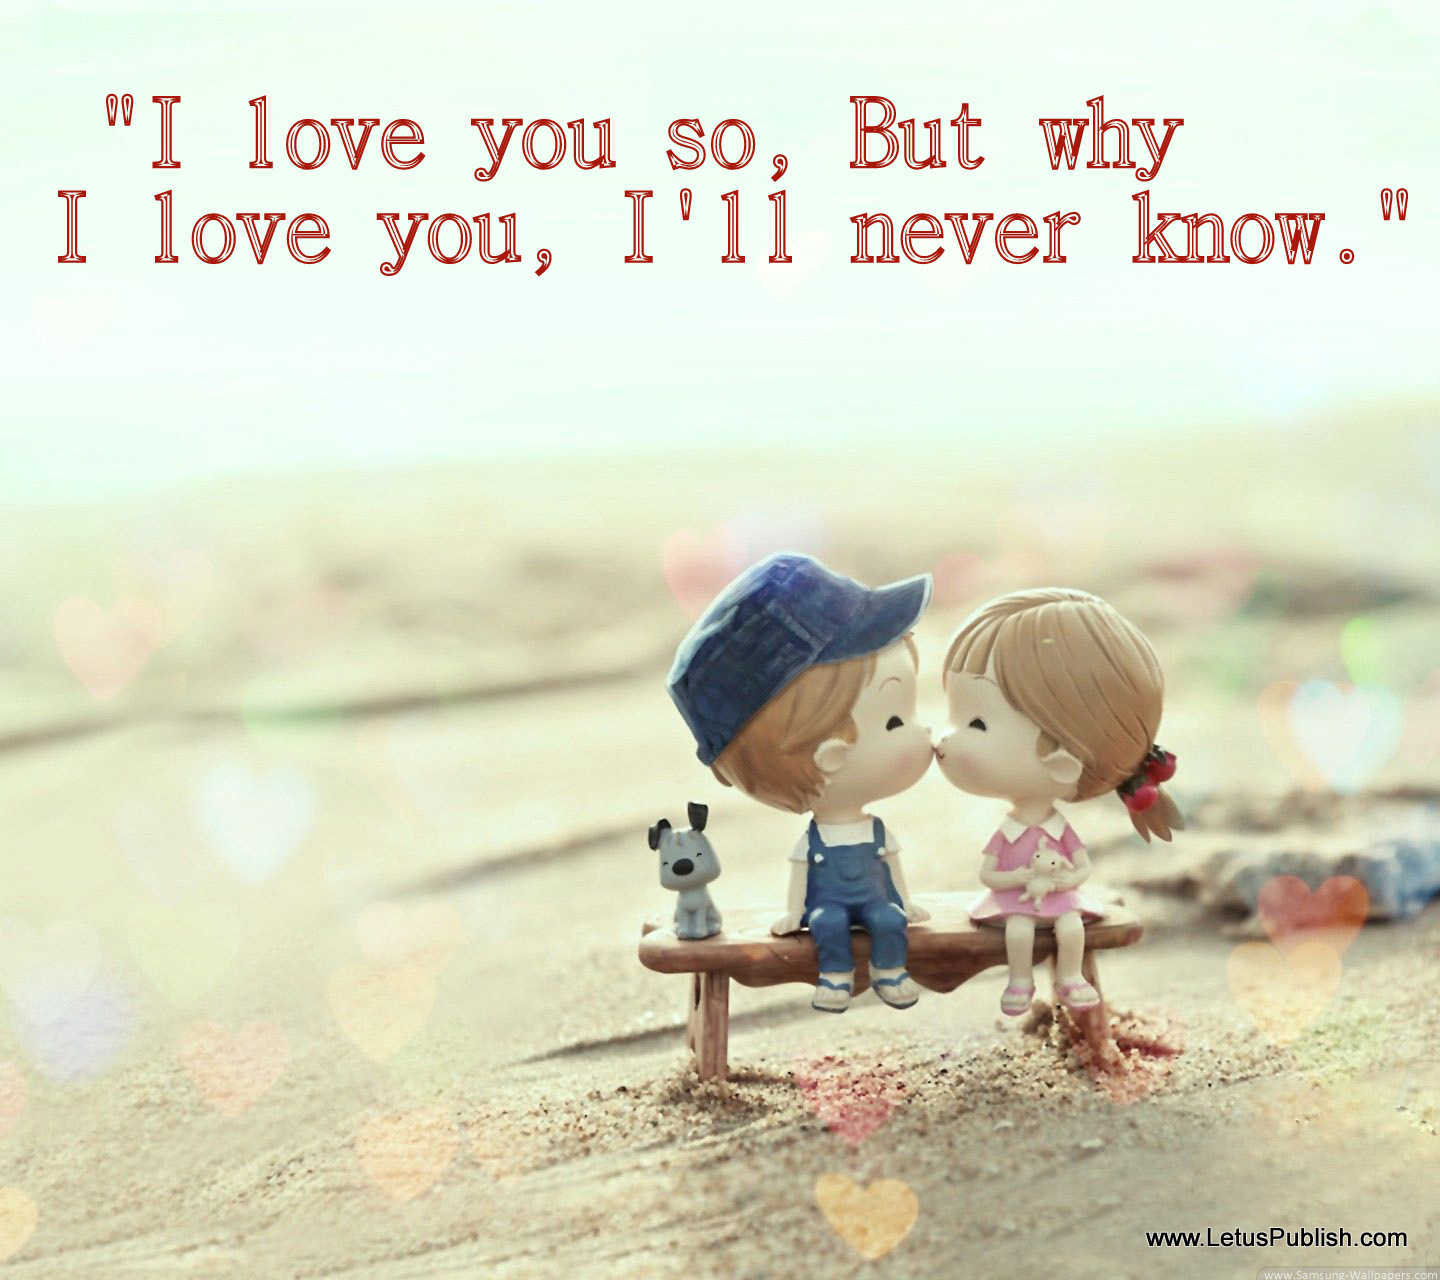 Lovely Couples Images With Quotes: Beautiful Romantic Love HD Wallpapers For Couples